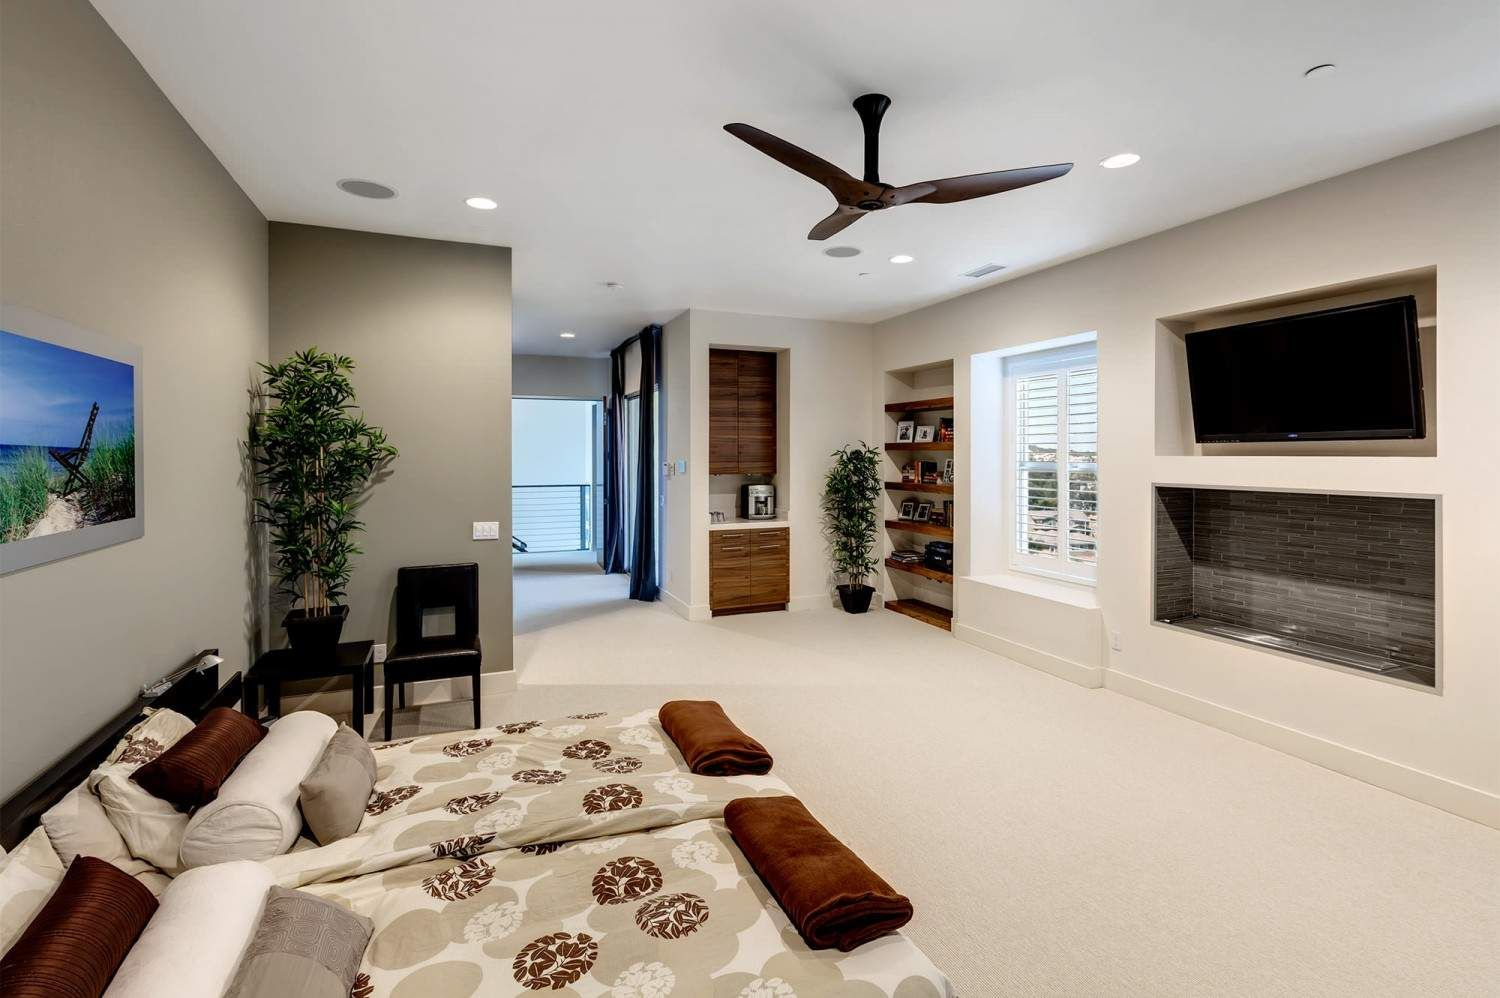 Haiku Home Wiley Pinterest Ceiling Fan And By Big Ass Fans For The